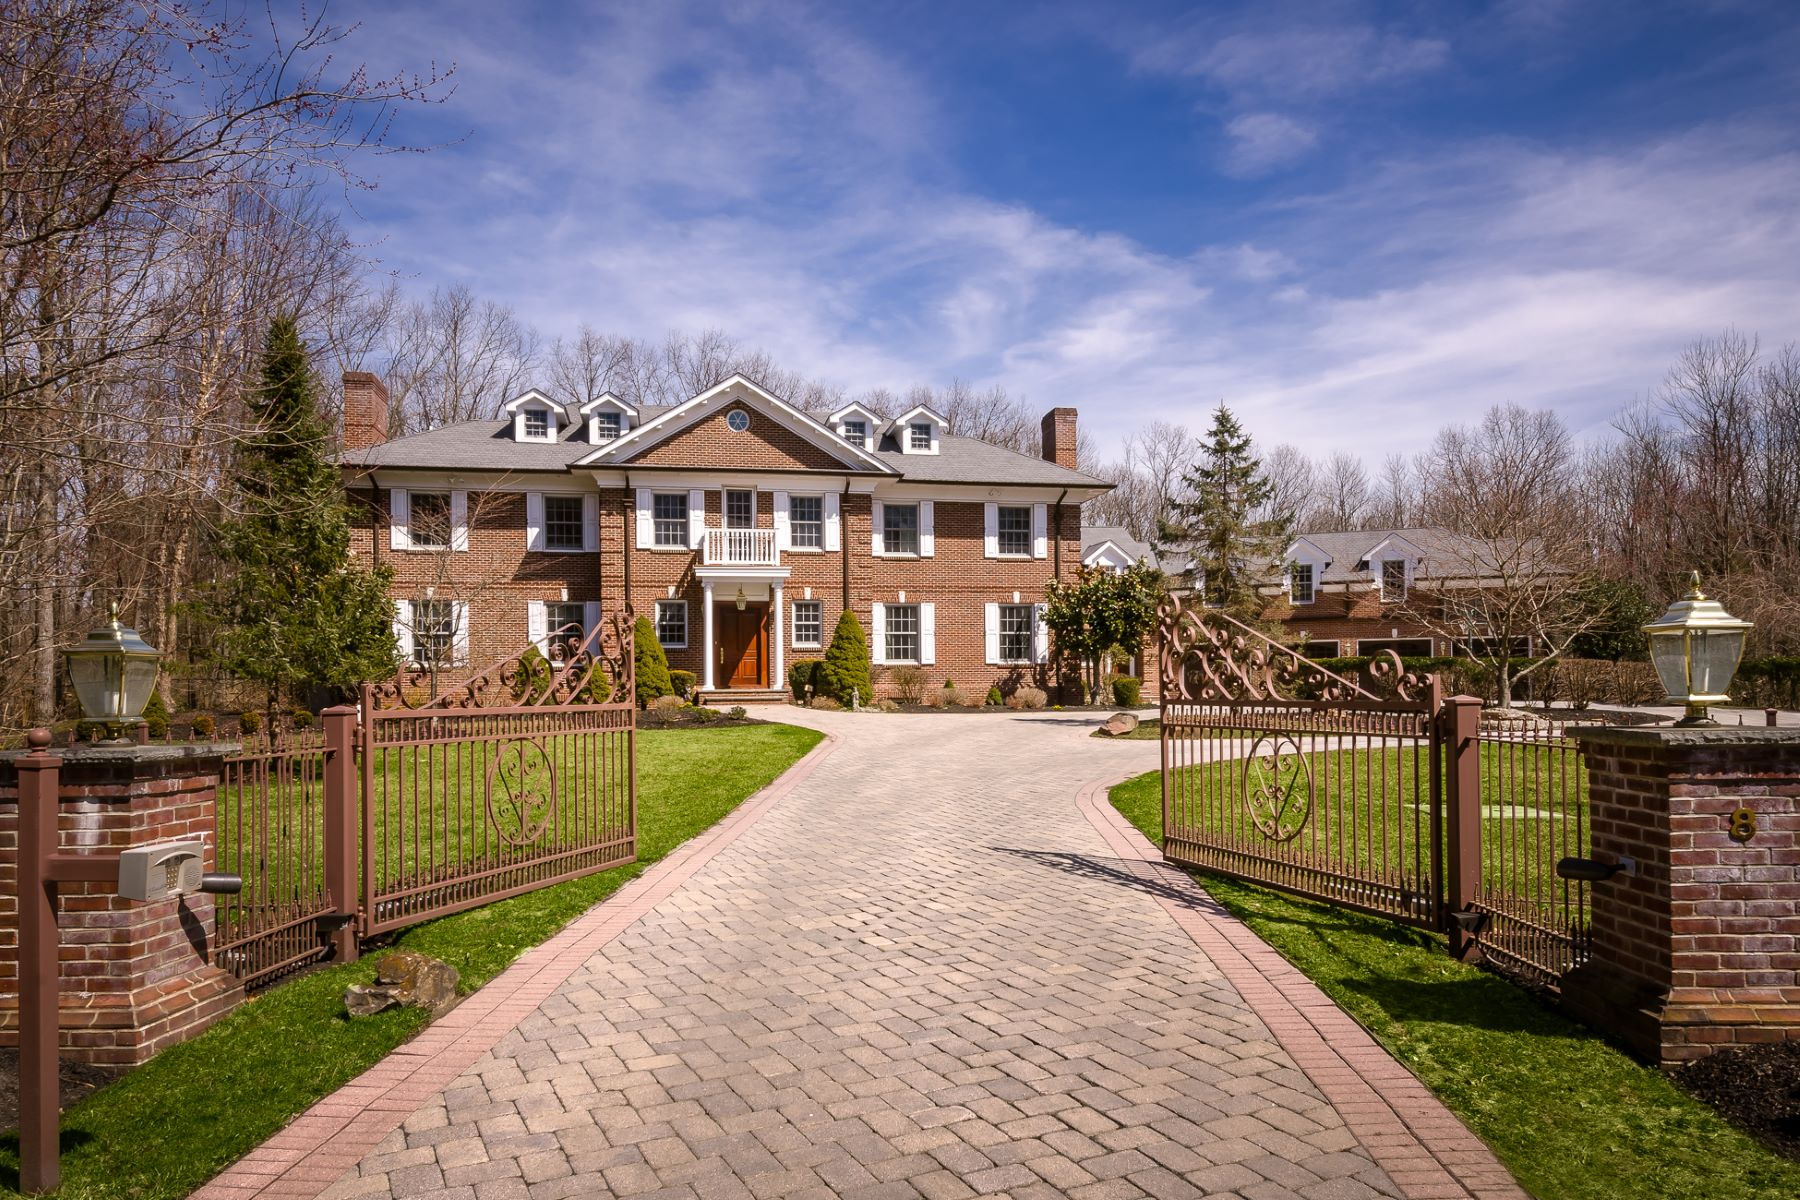 Single Family Homes for Sale at Stonybrook Manor: Once-in-a-Lifetime Magnificence 8 Players Lane Princeton, New Jersey 08540 United States